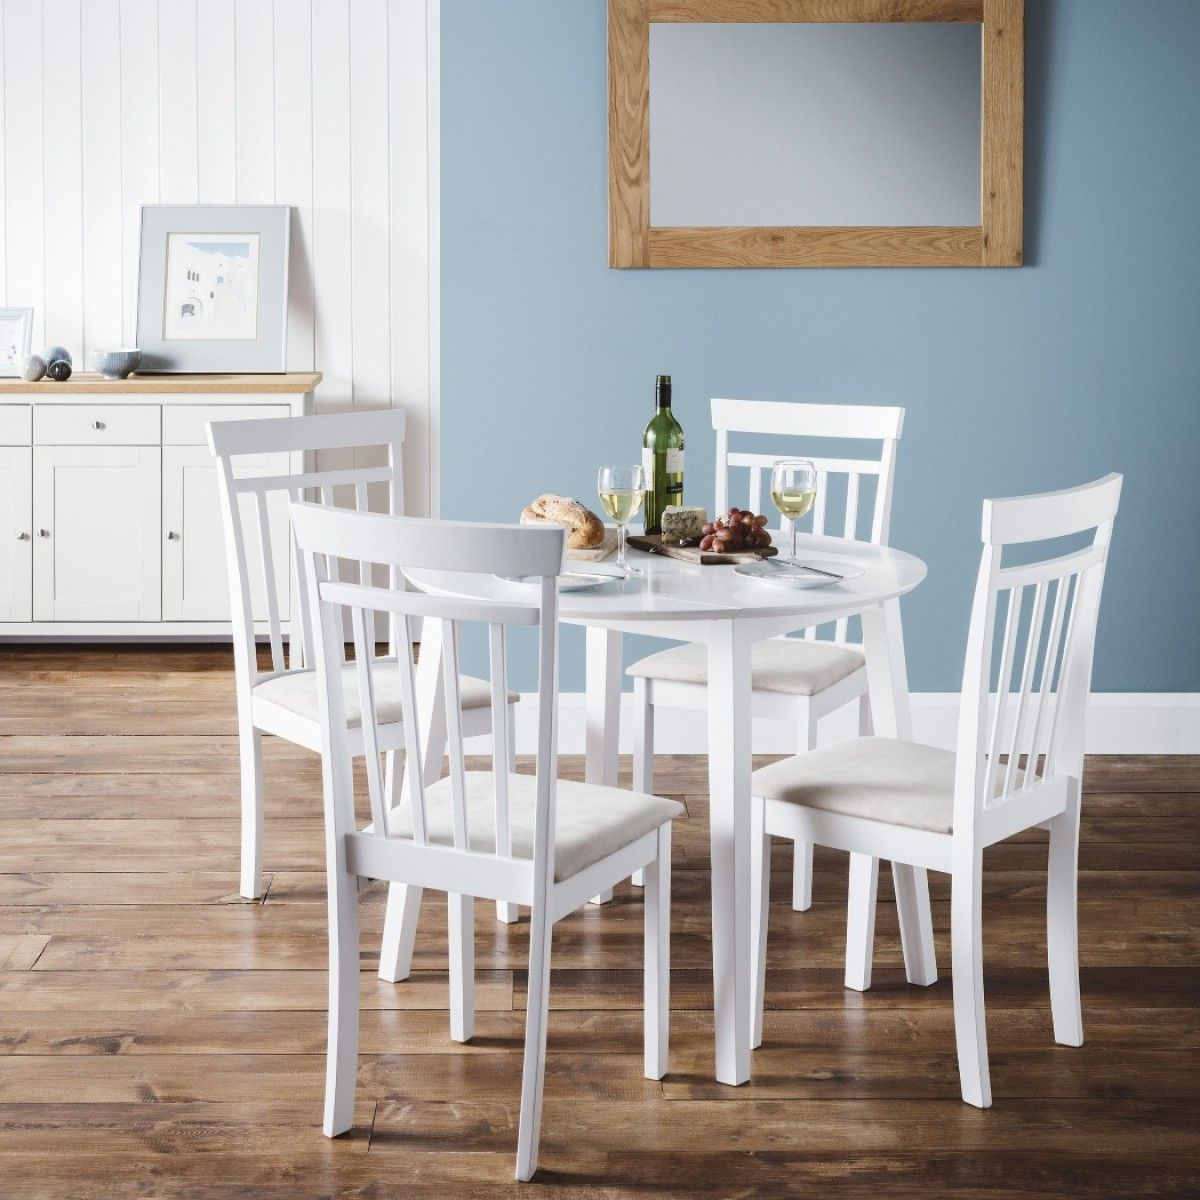 host white drop leaf table and chairs